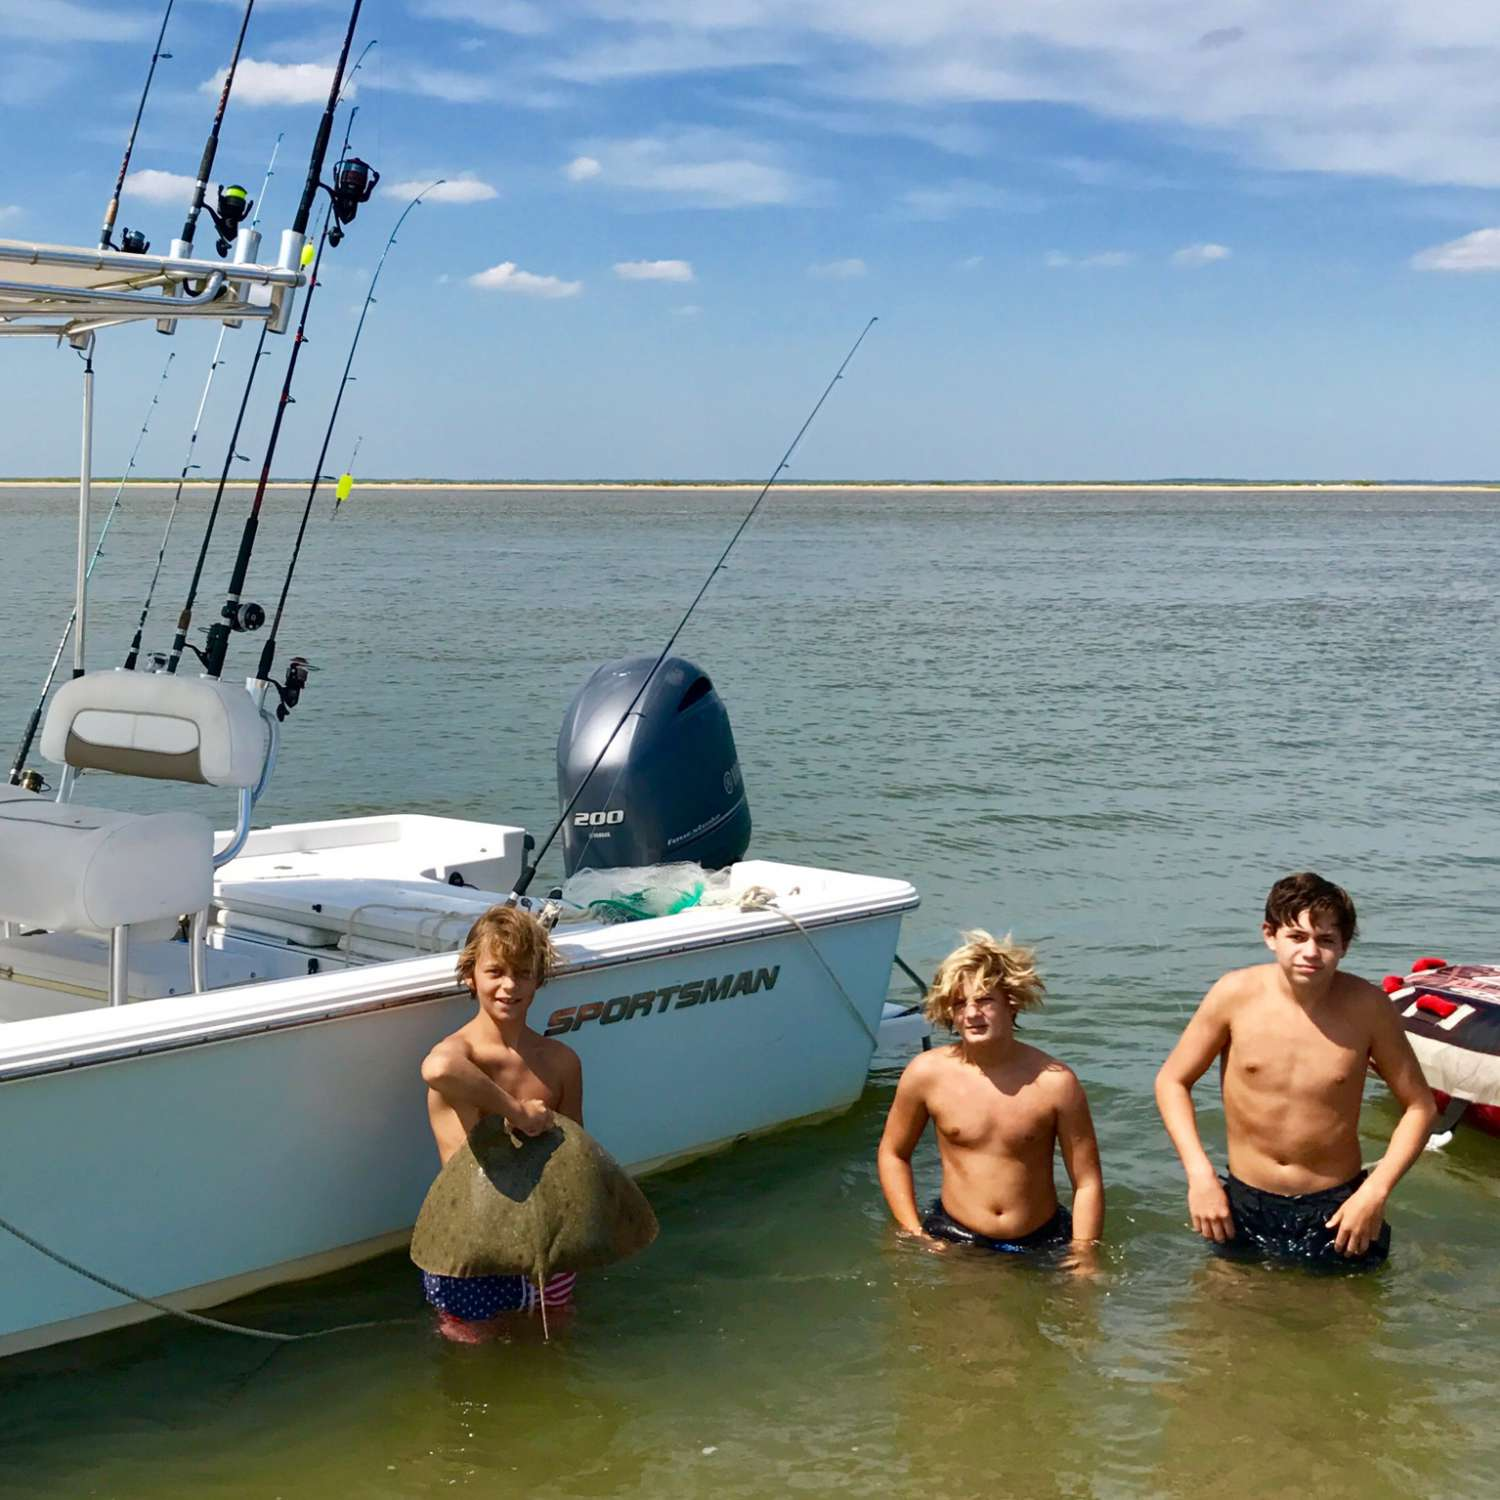 Title: Growing Up Right - On board their Sportsman Masters 227 Bay Boat - Location: Mt. Pleasant, South Carolina. Participating in the Photo Contest #SportsmanSeptember2017